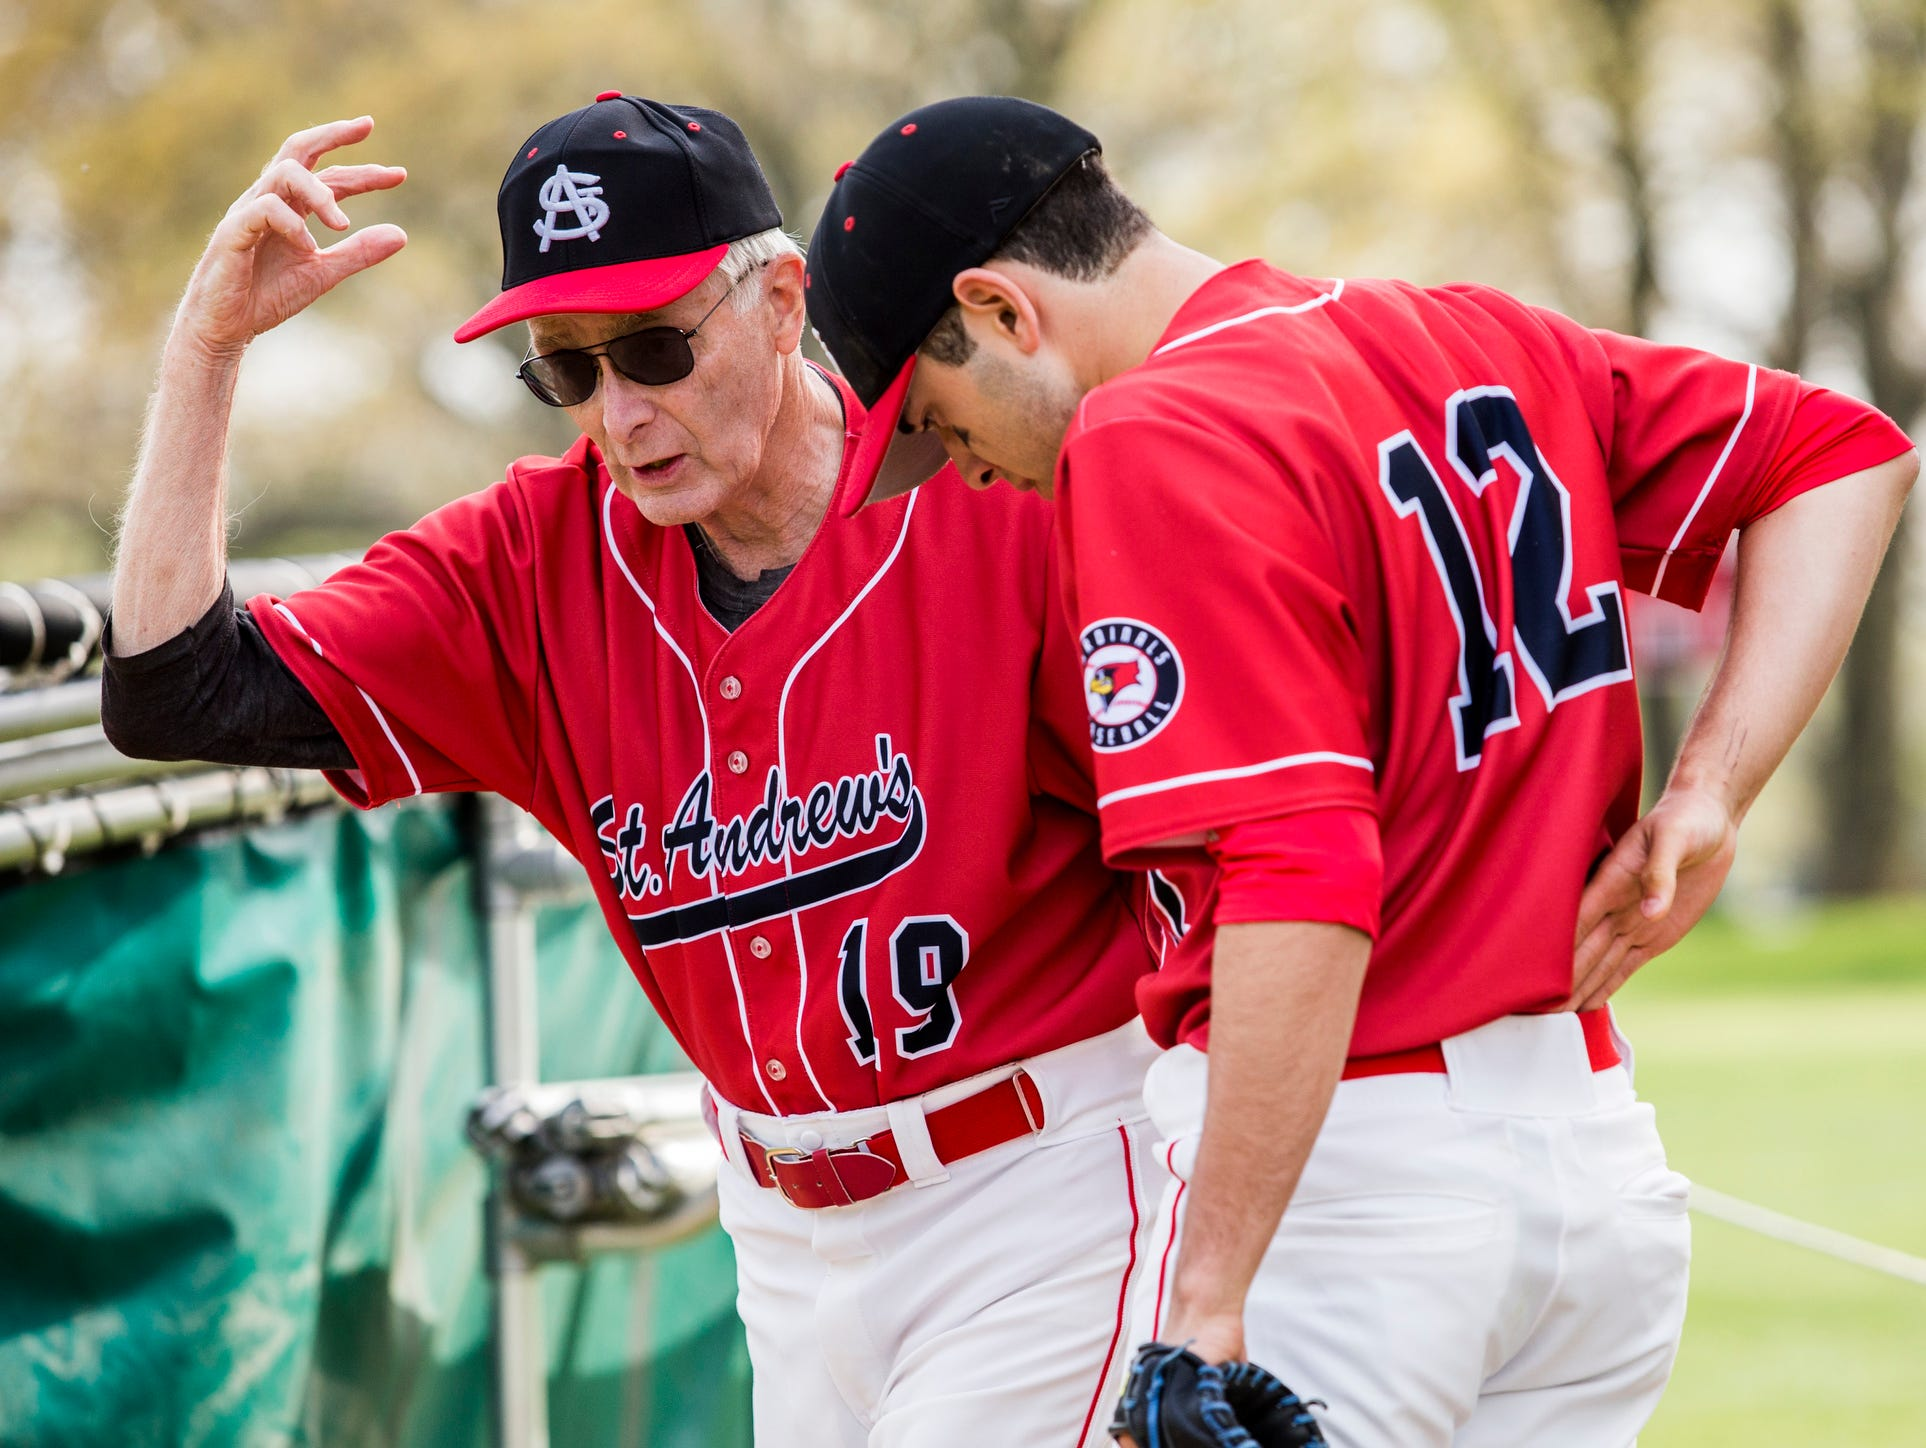 St. Andrew's head coach Bob Colburn talks starting pitcher Colin Cool before the start of a game at St. Andrew's School in Middletown on Thursday afternoon.